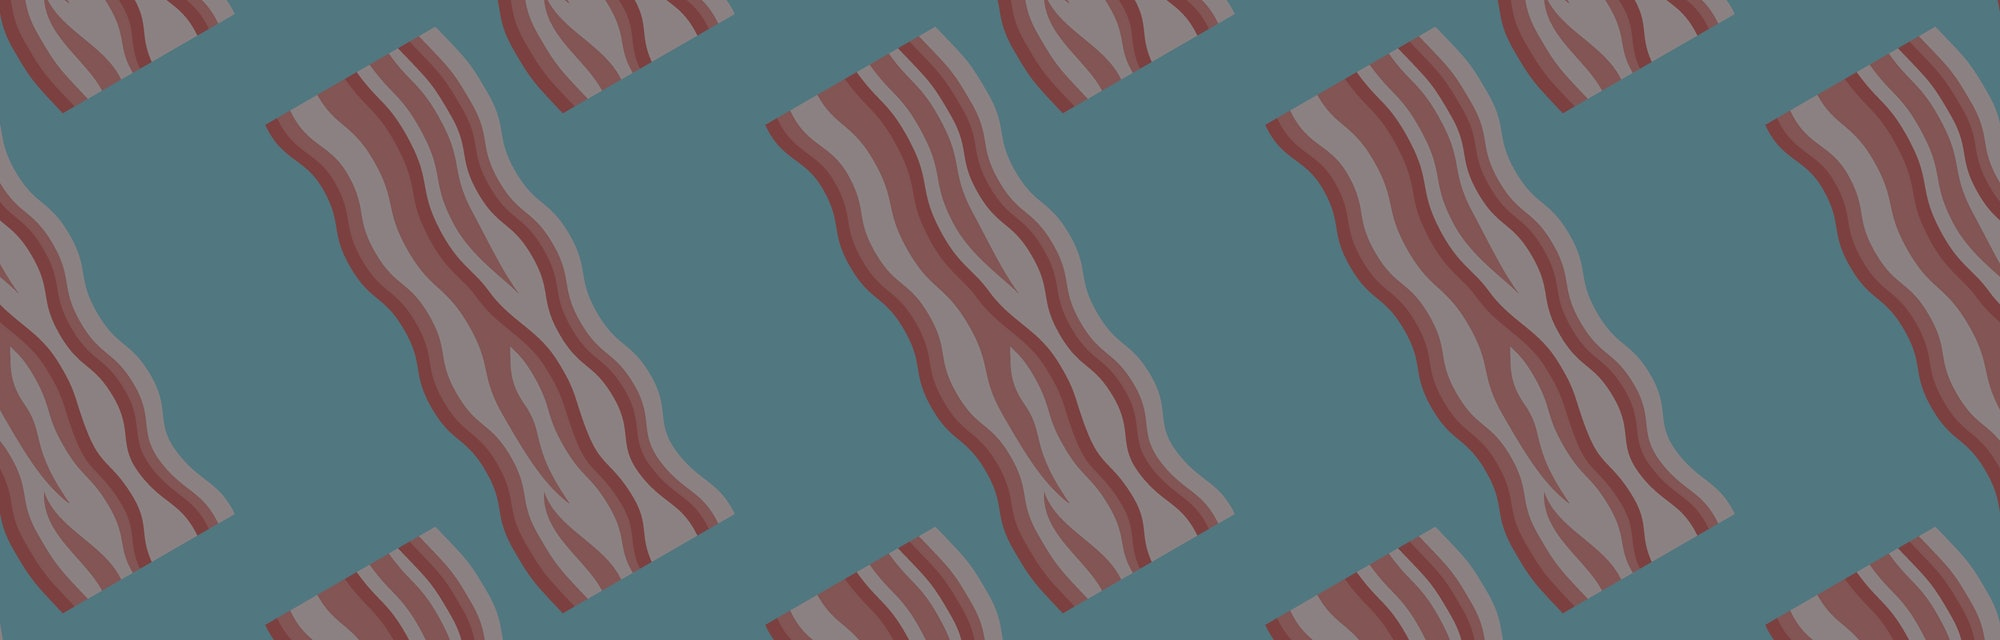 Seamless pattern with bacon strips on blue background. Vector texture.